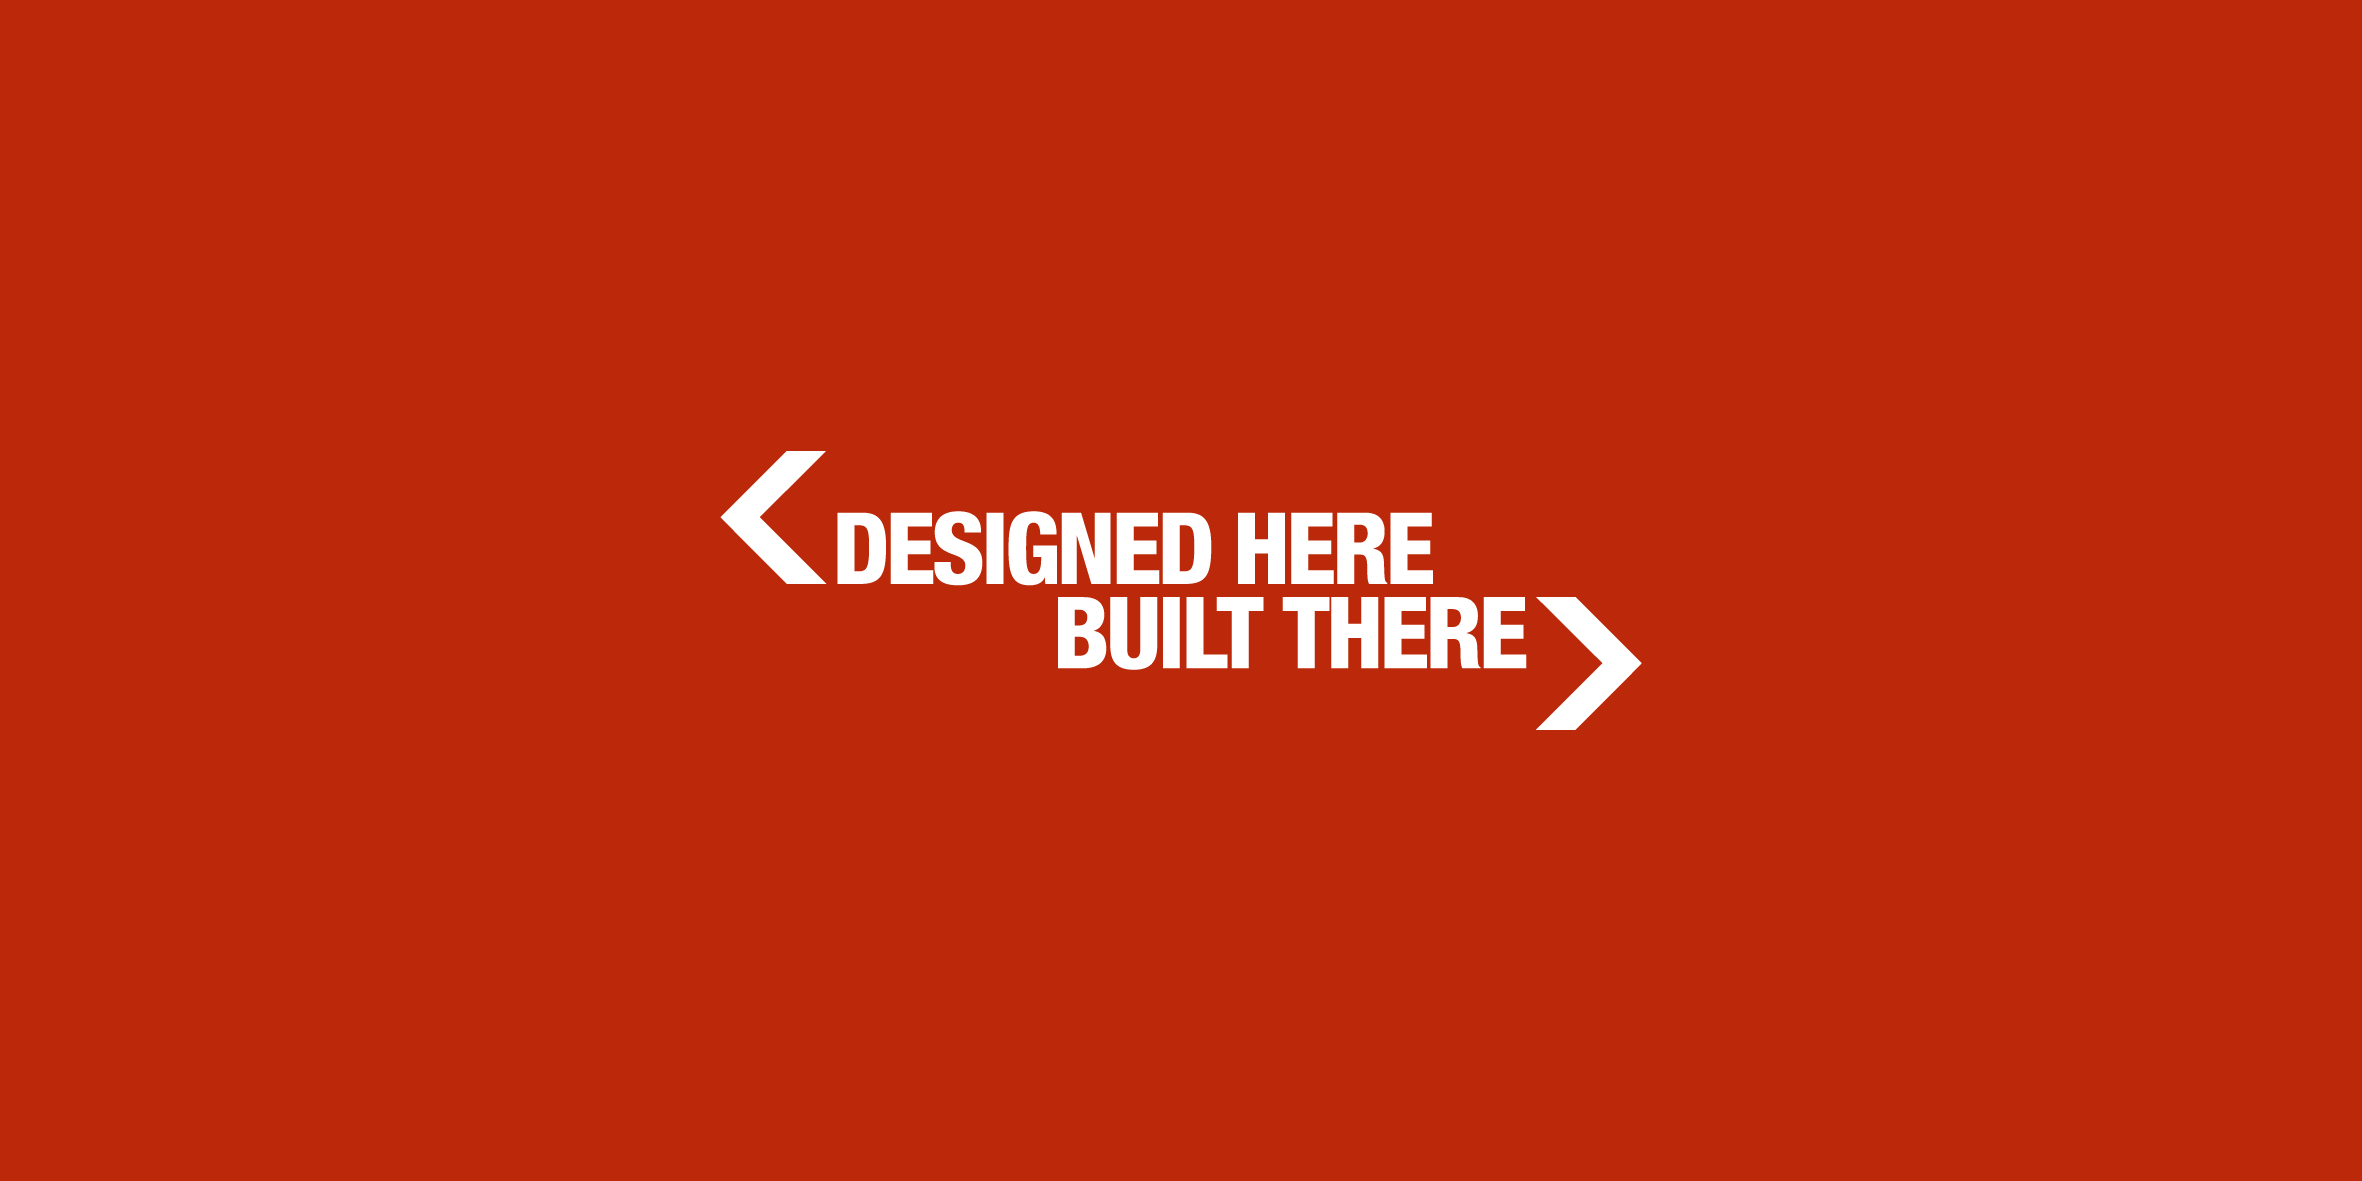 designedhere_builtthere-01.png